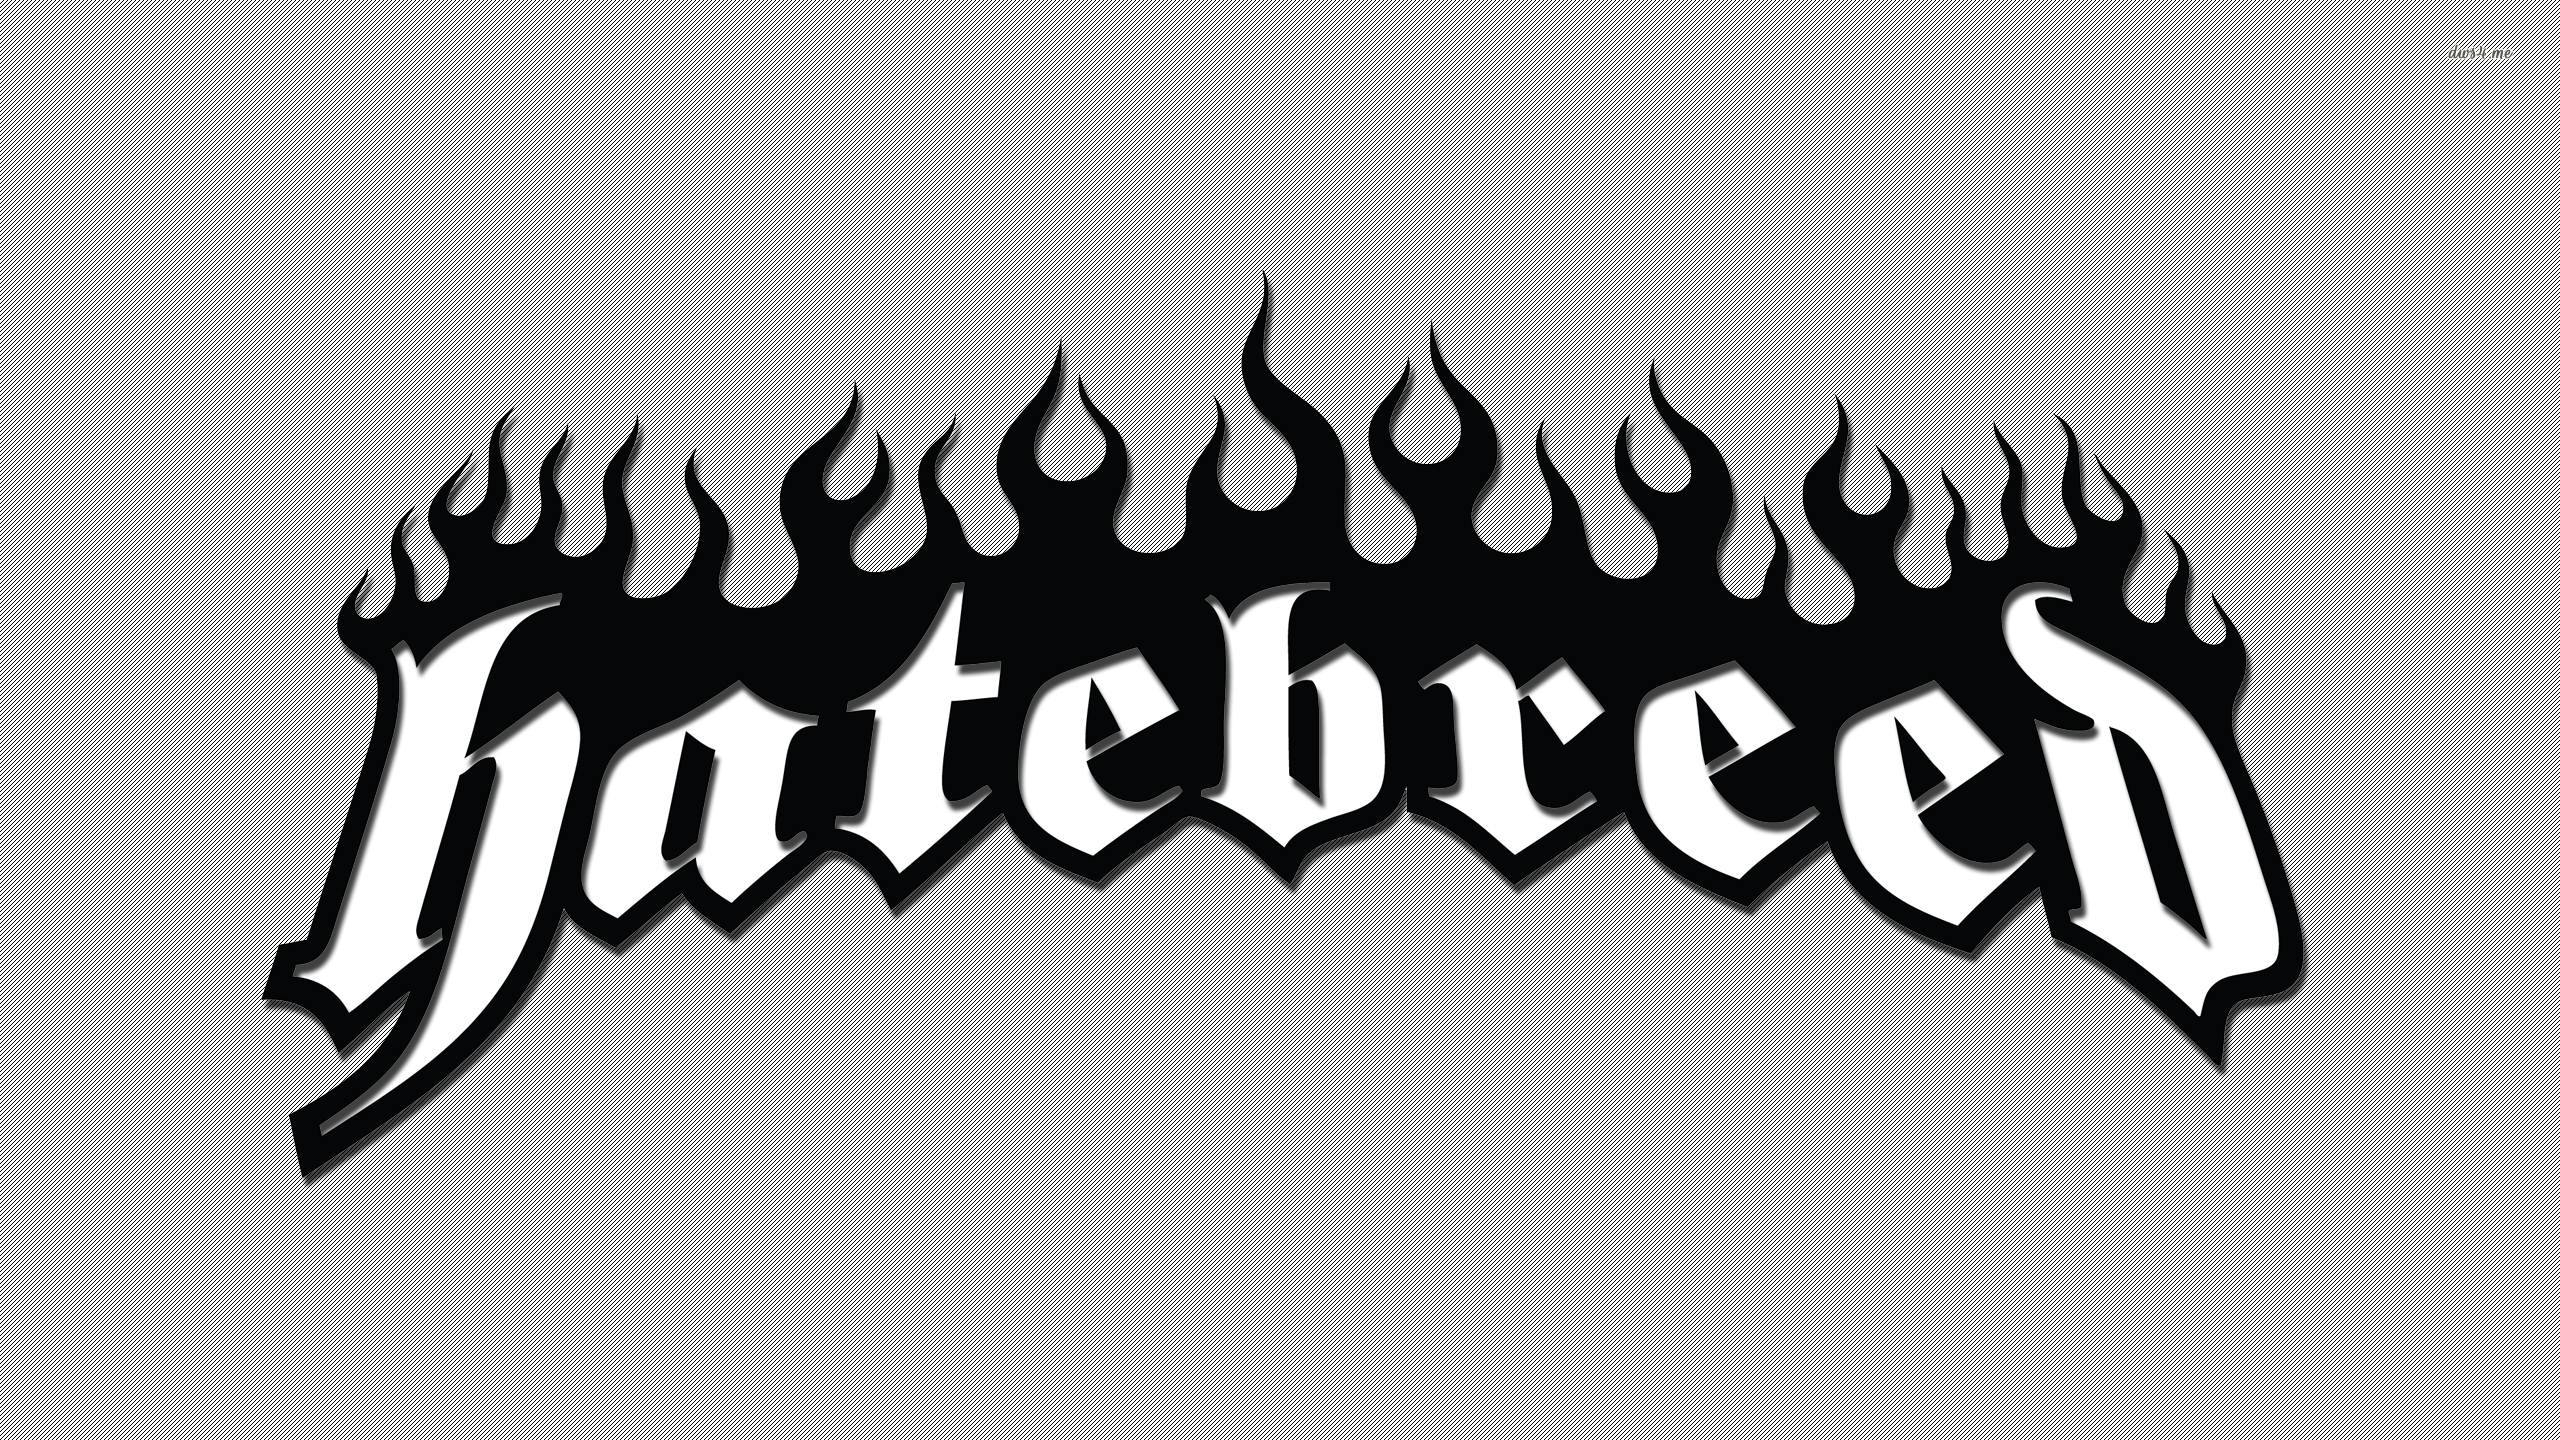 Hatebreed wallpaper.